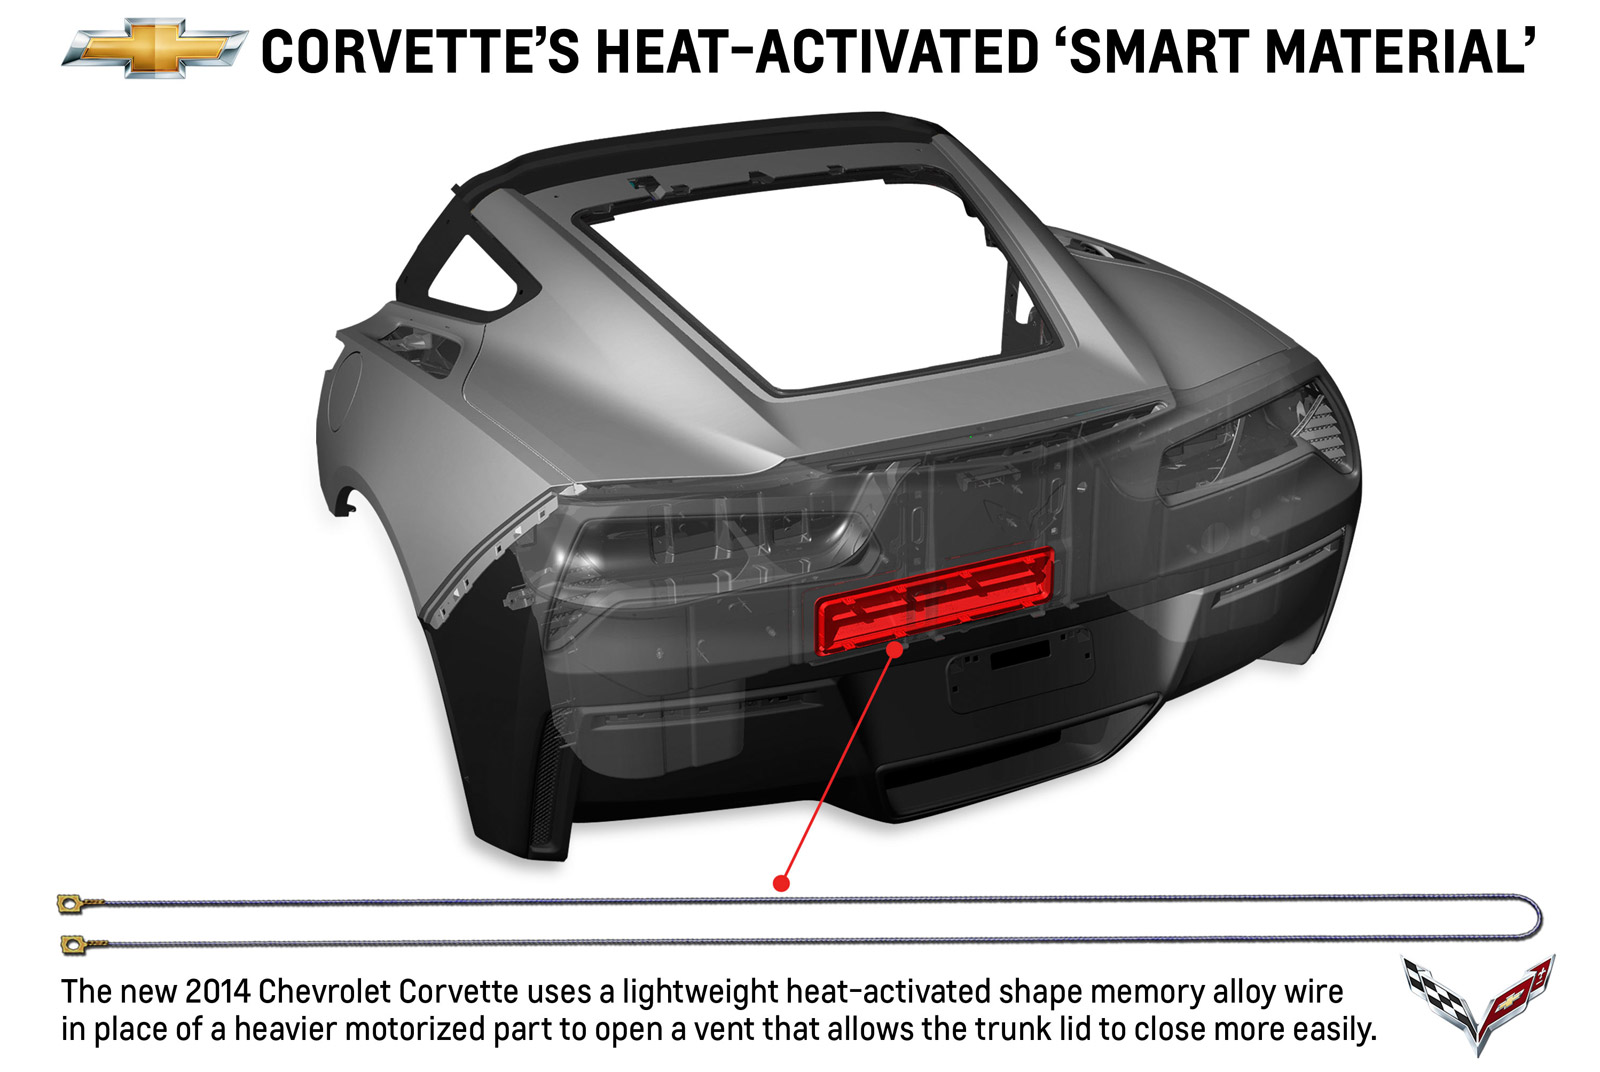 Https News 1082329 Lotus F1 Owner Buys 1985 Corvette Wiring Diagram 351 Windsor Heater Hose Routing 2014 Chevrolet Stingray To Feature New Heat Activated Smart Materials 100418909 H